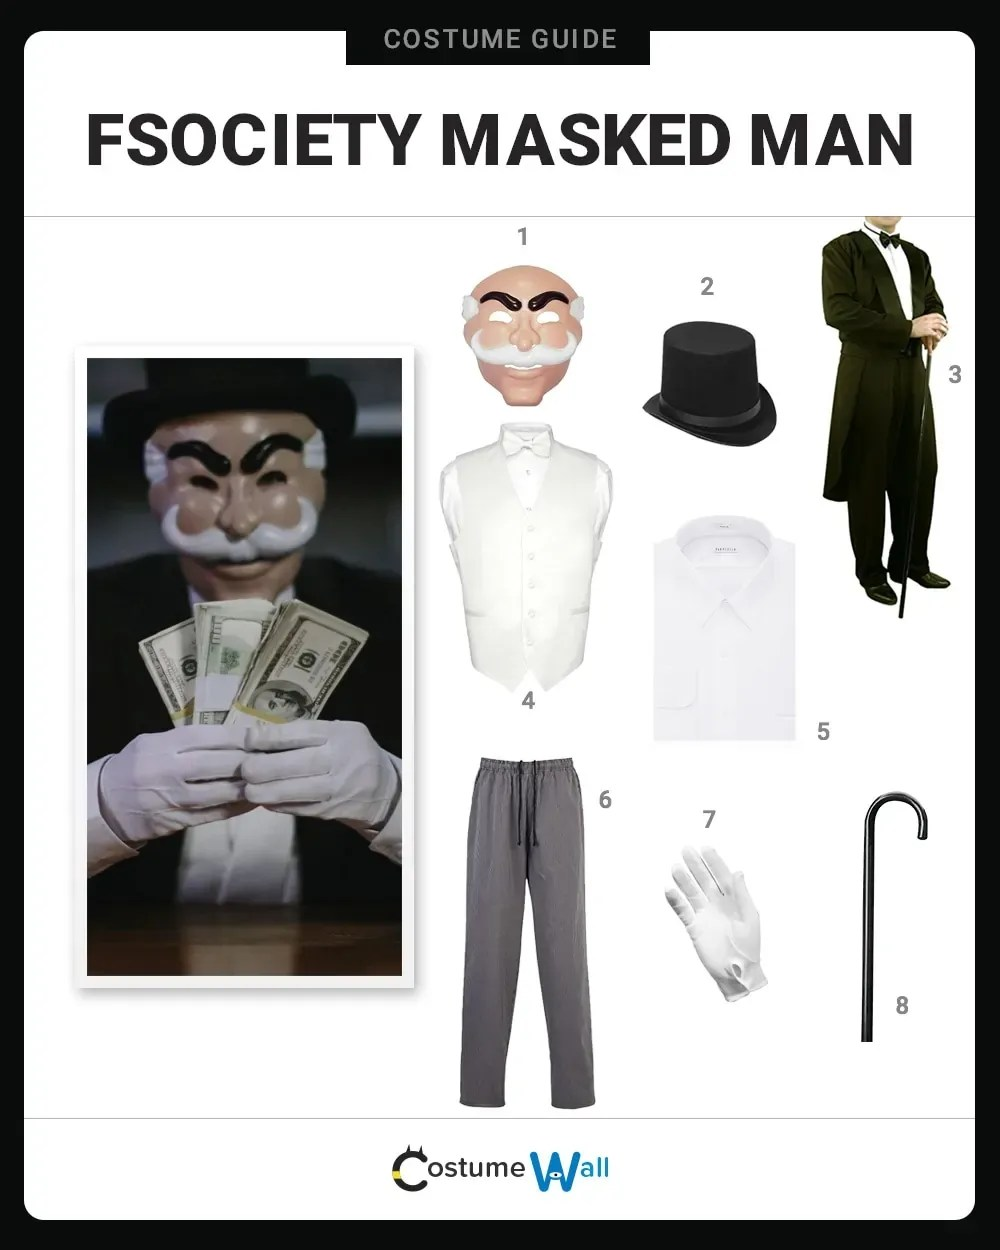 dress like fsociety masked